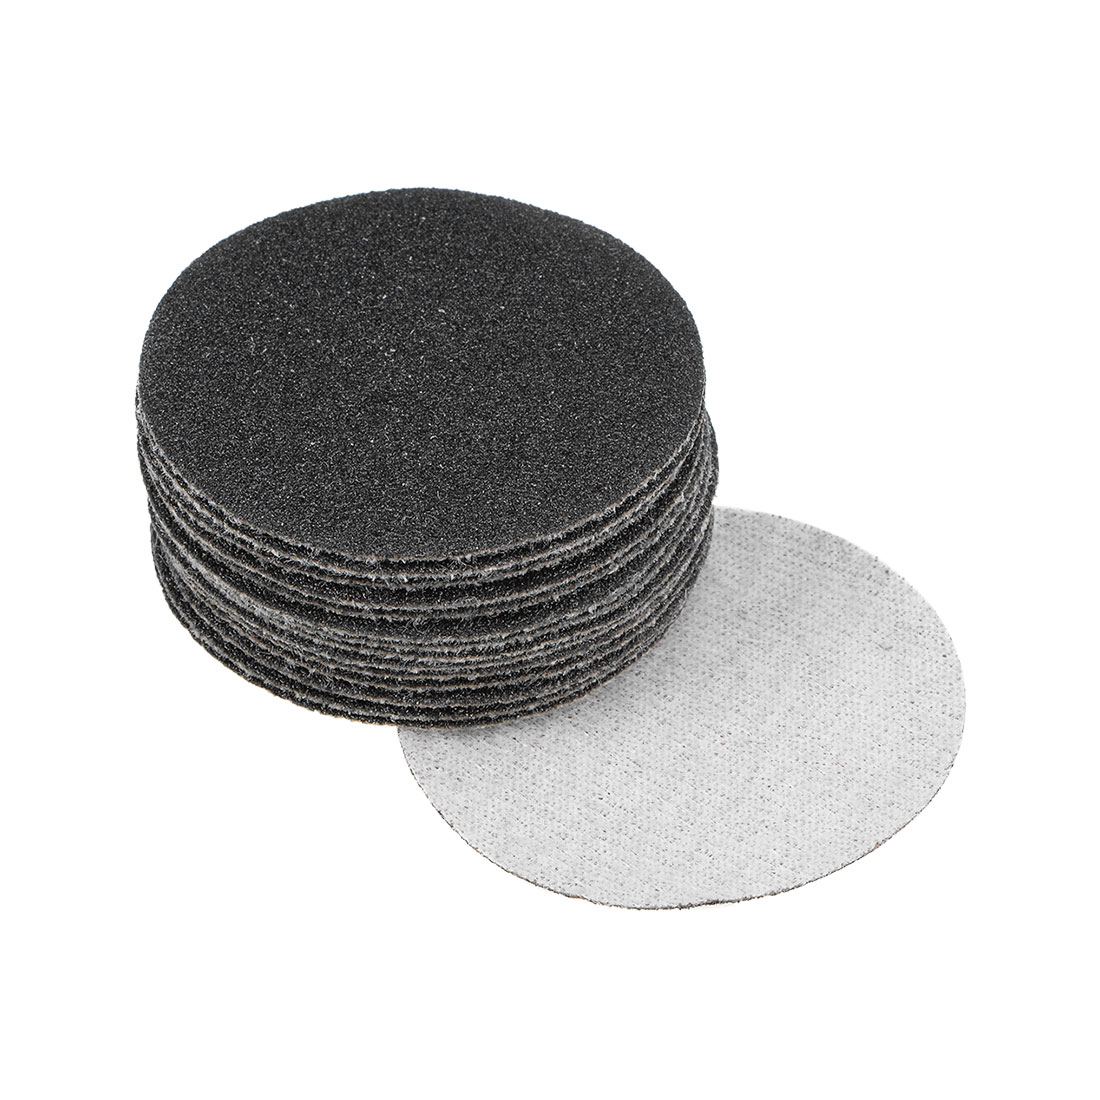 2 inch Wet Dry Discs 100 Grit Hook and Loop Sanding Disc Silicon Carbide 15pcs